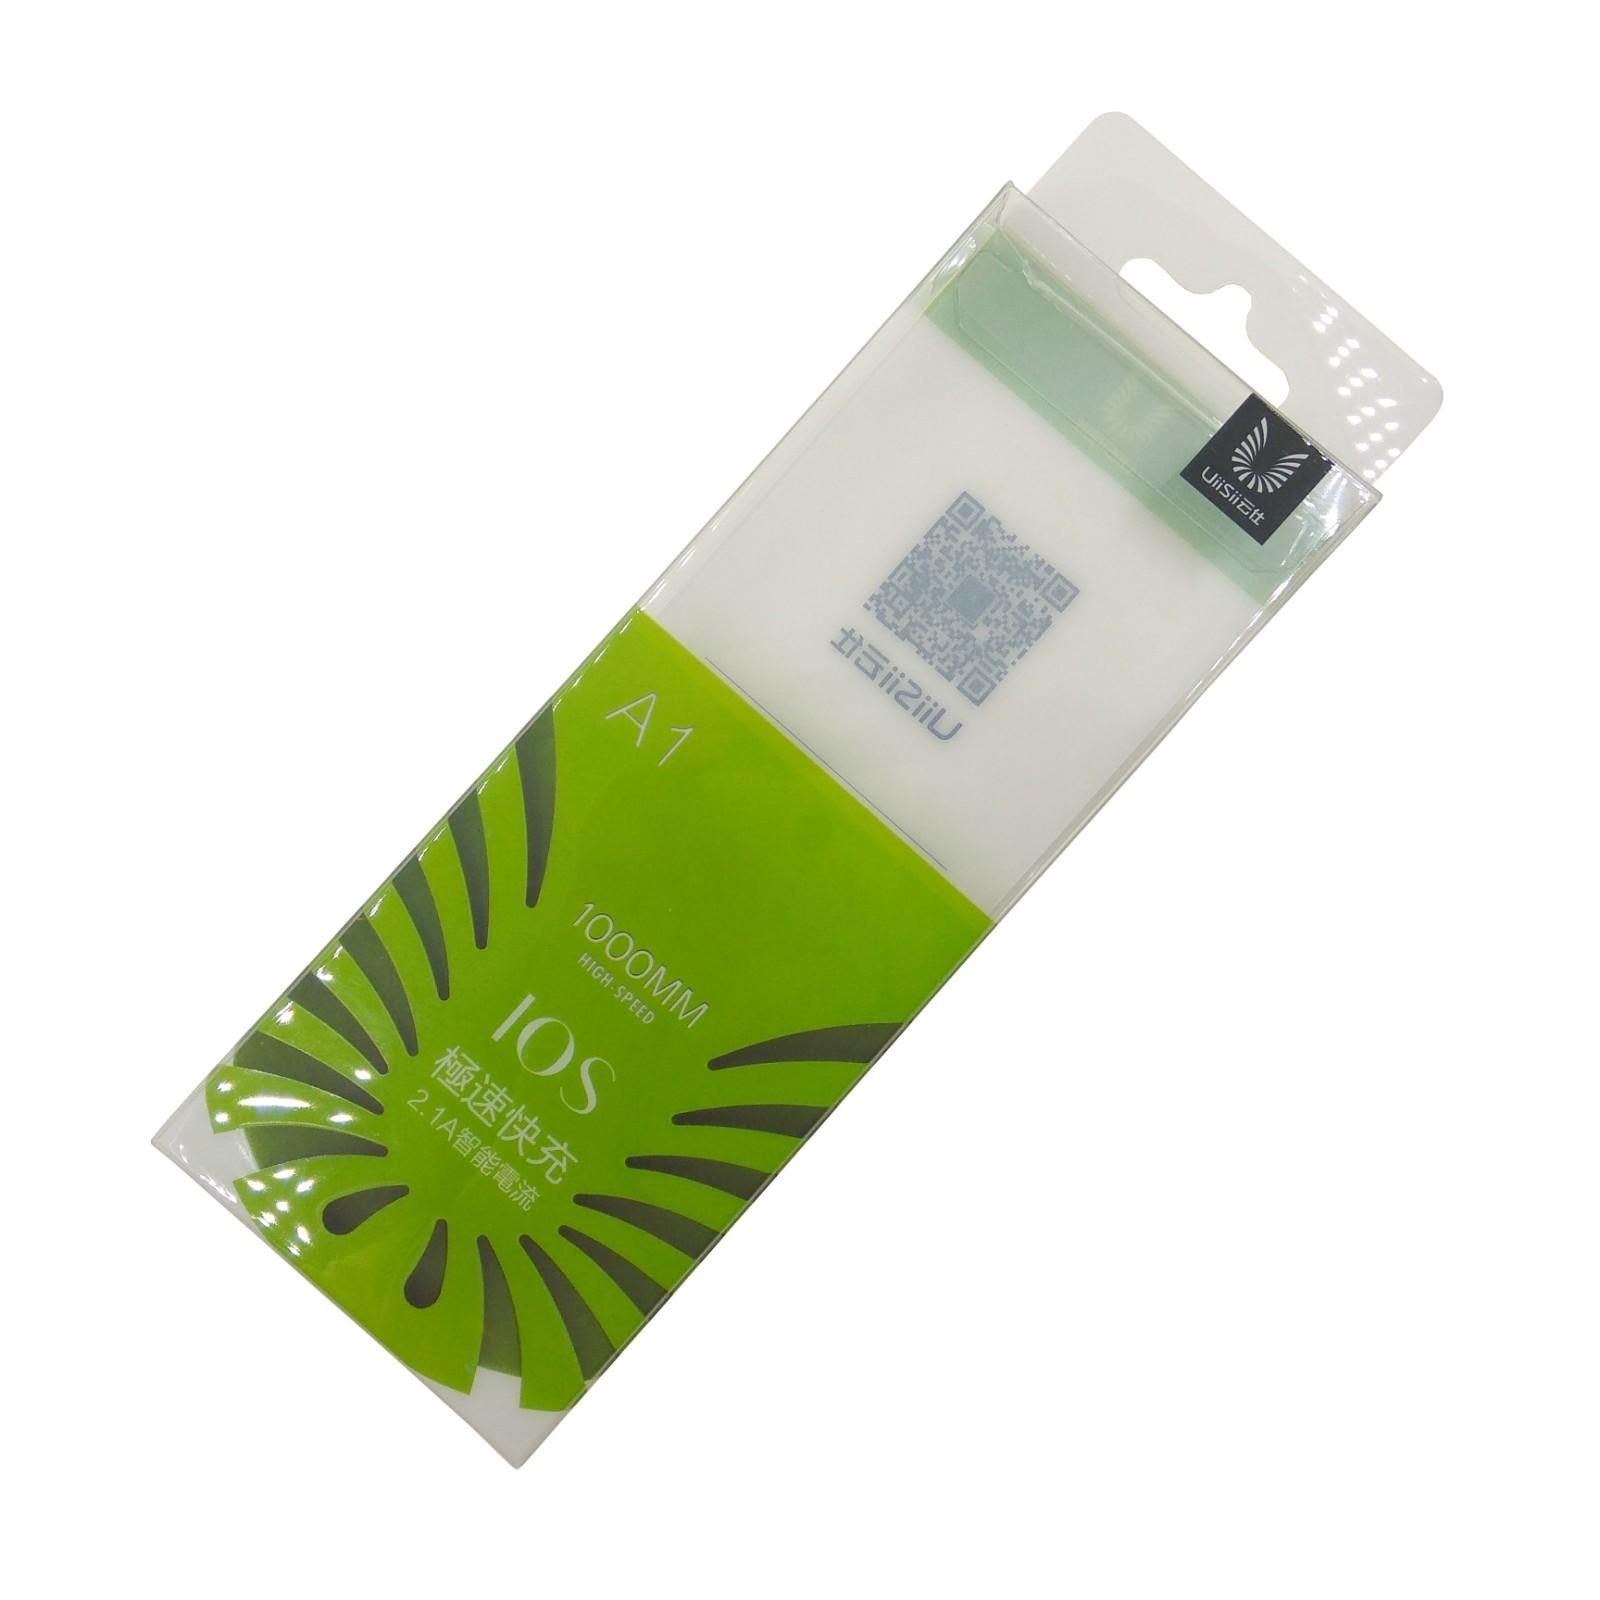 Yijianxing Plastic Products full printing plastic box packaging check now for product packaging-2